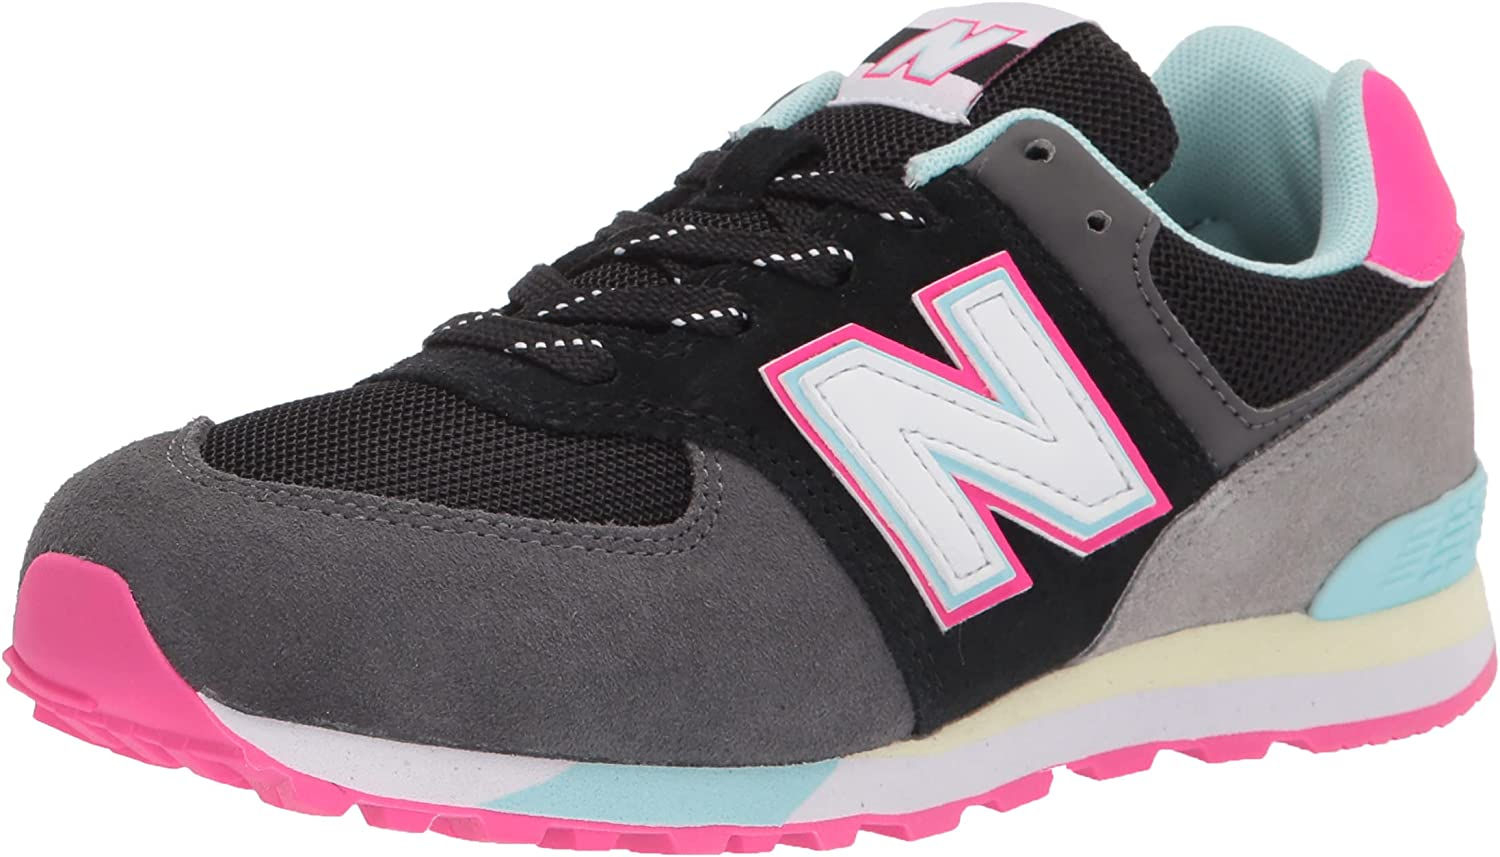 New Reservation Balance Kid's 574 V1 Baltimore Mall Lace-Up Sneaker